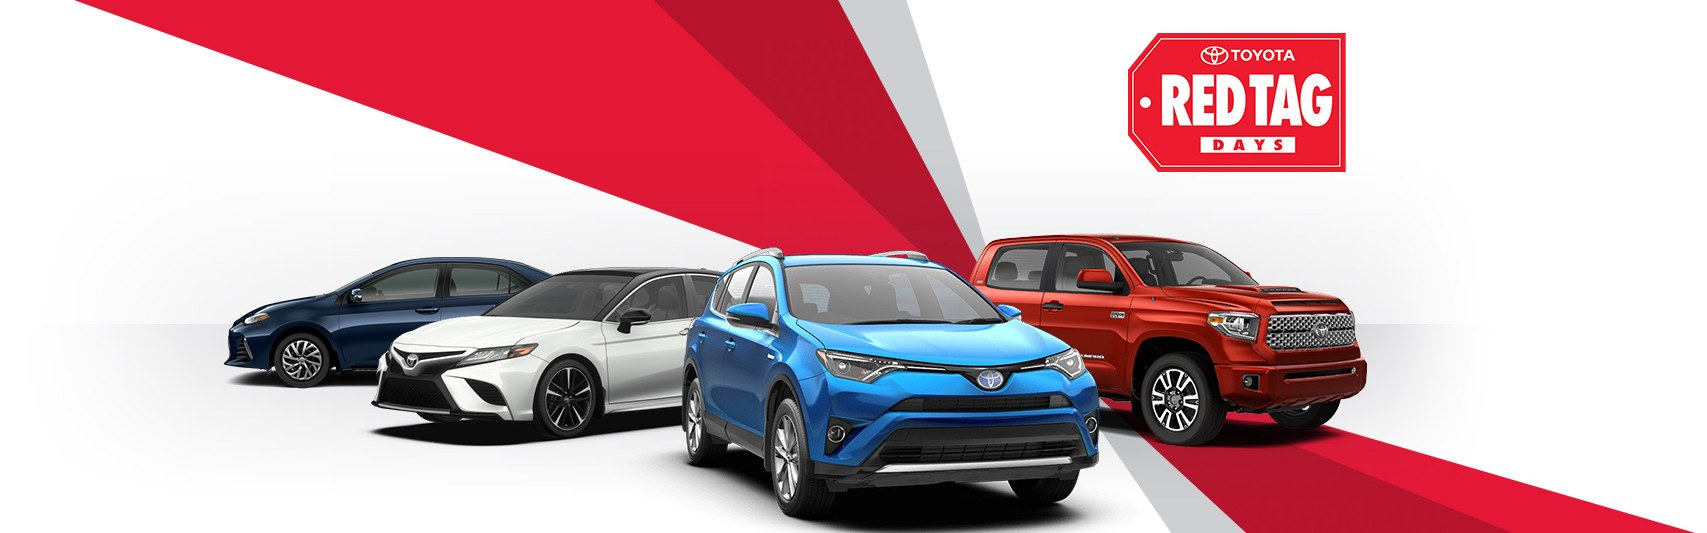 Image result for toyota red tag days 2018